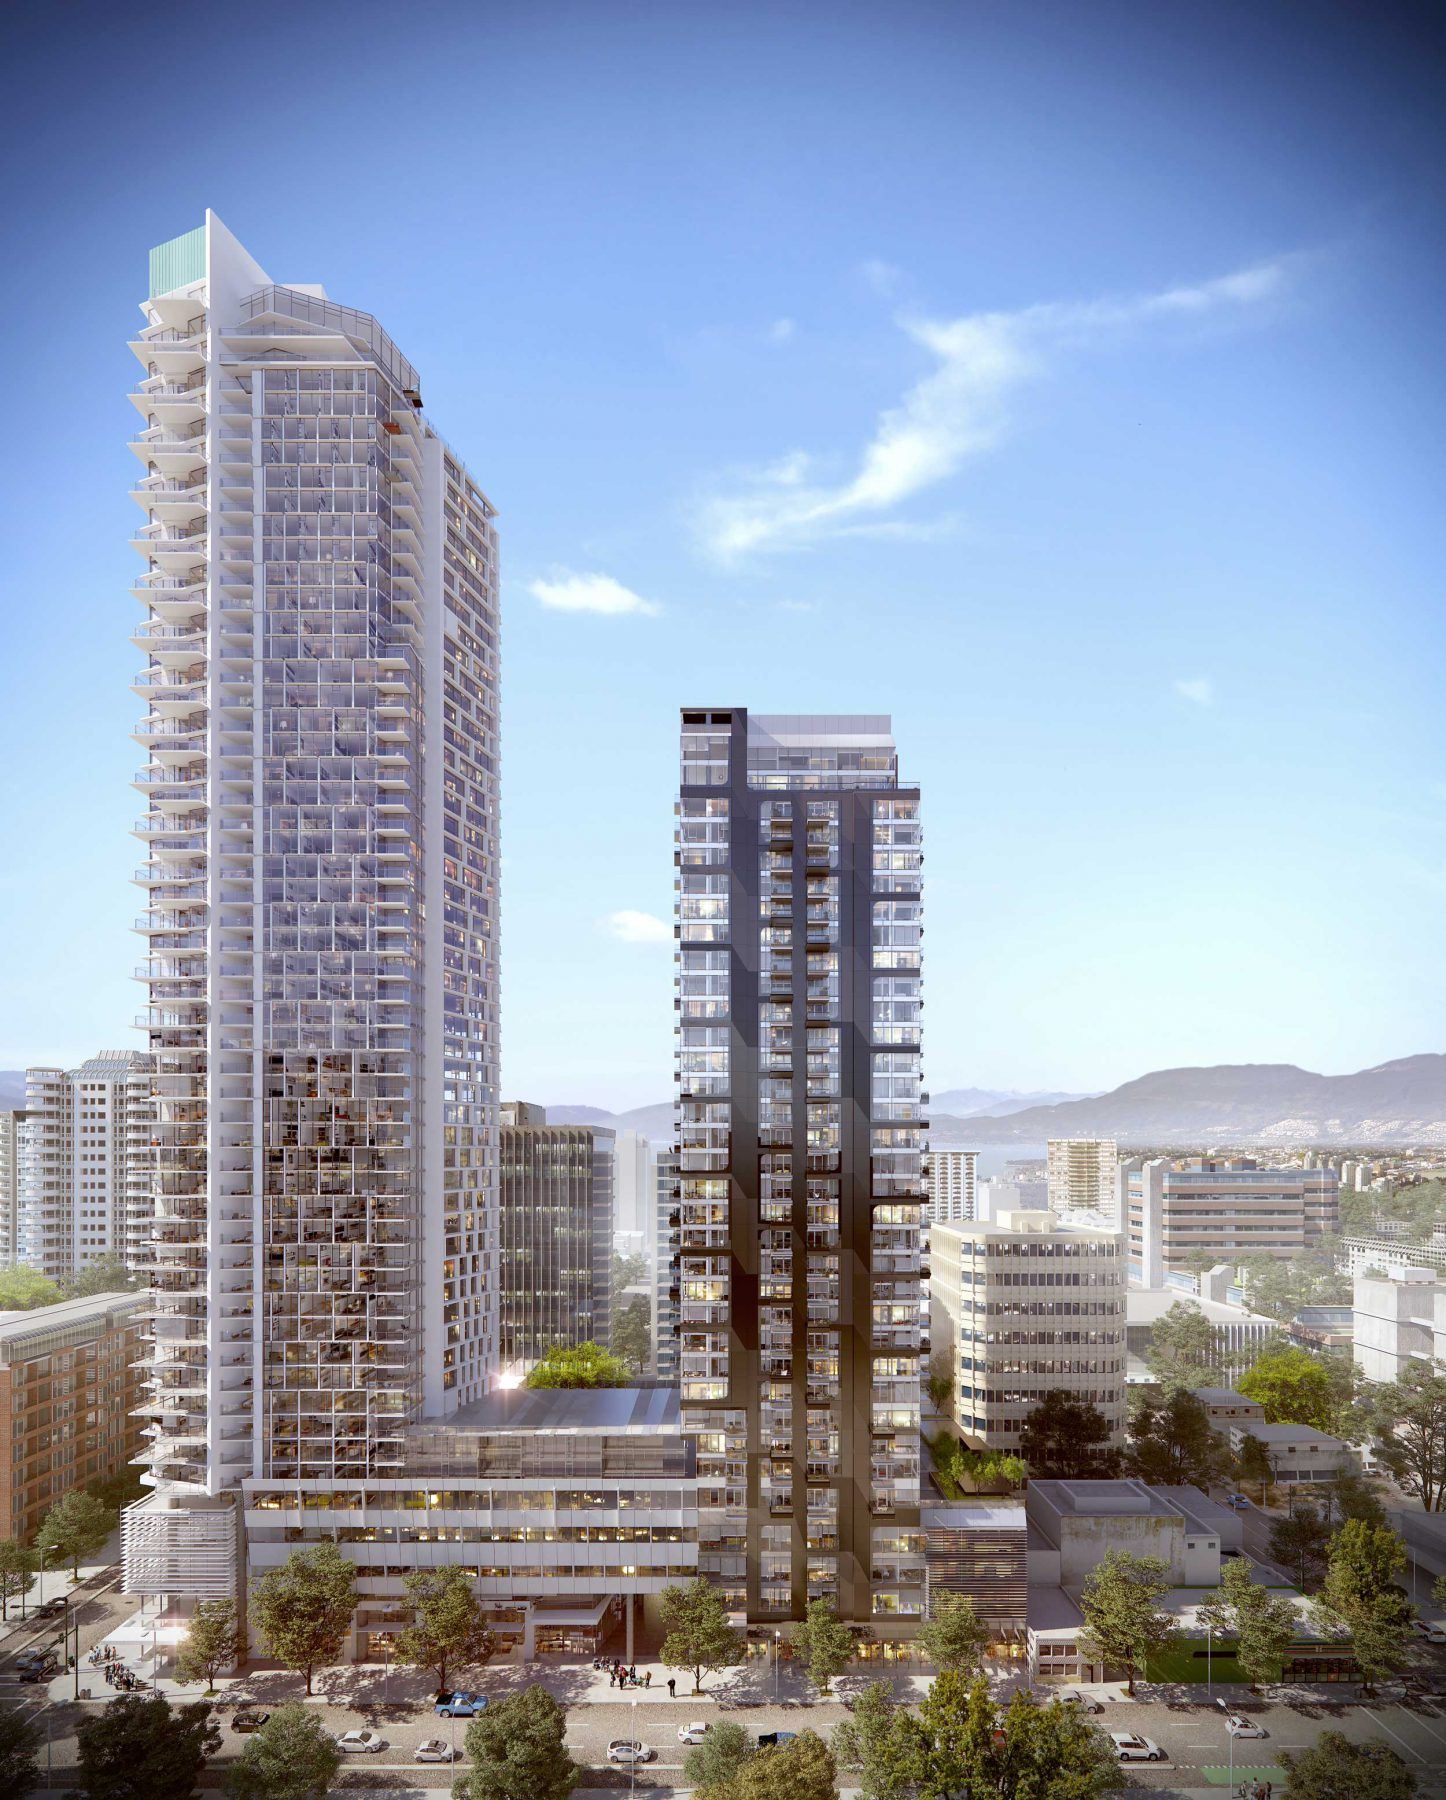 Main Photo: 2509 1277 Hornby in Vancouver: Downtown VW Condo for sale (Vancouver West)